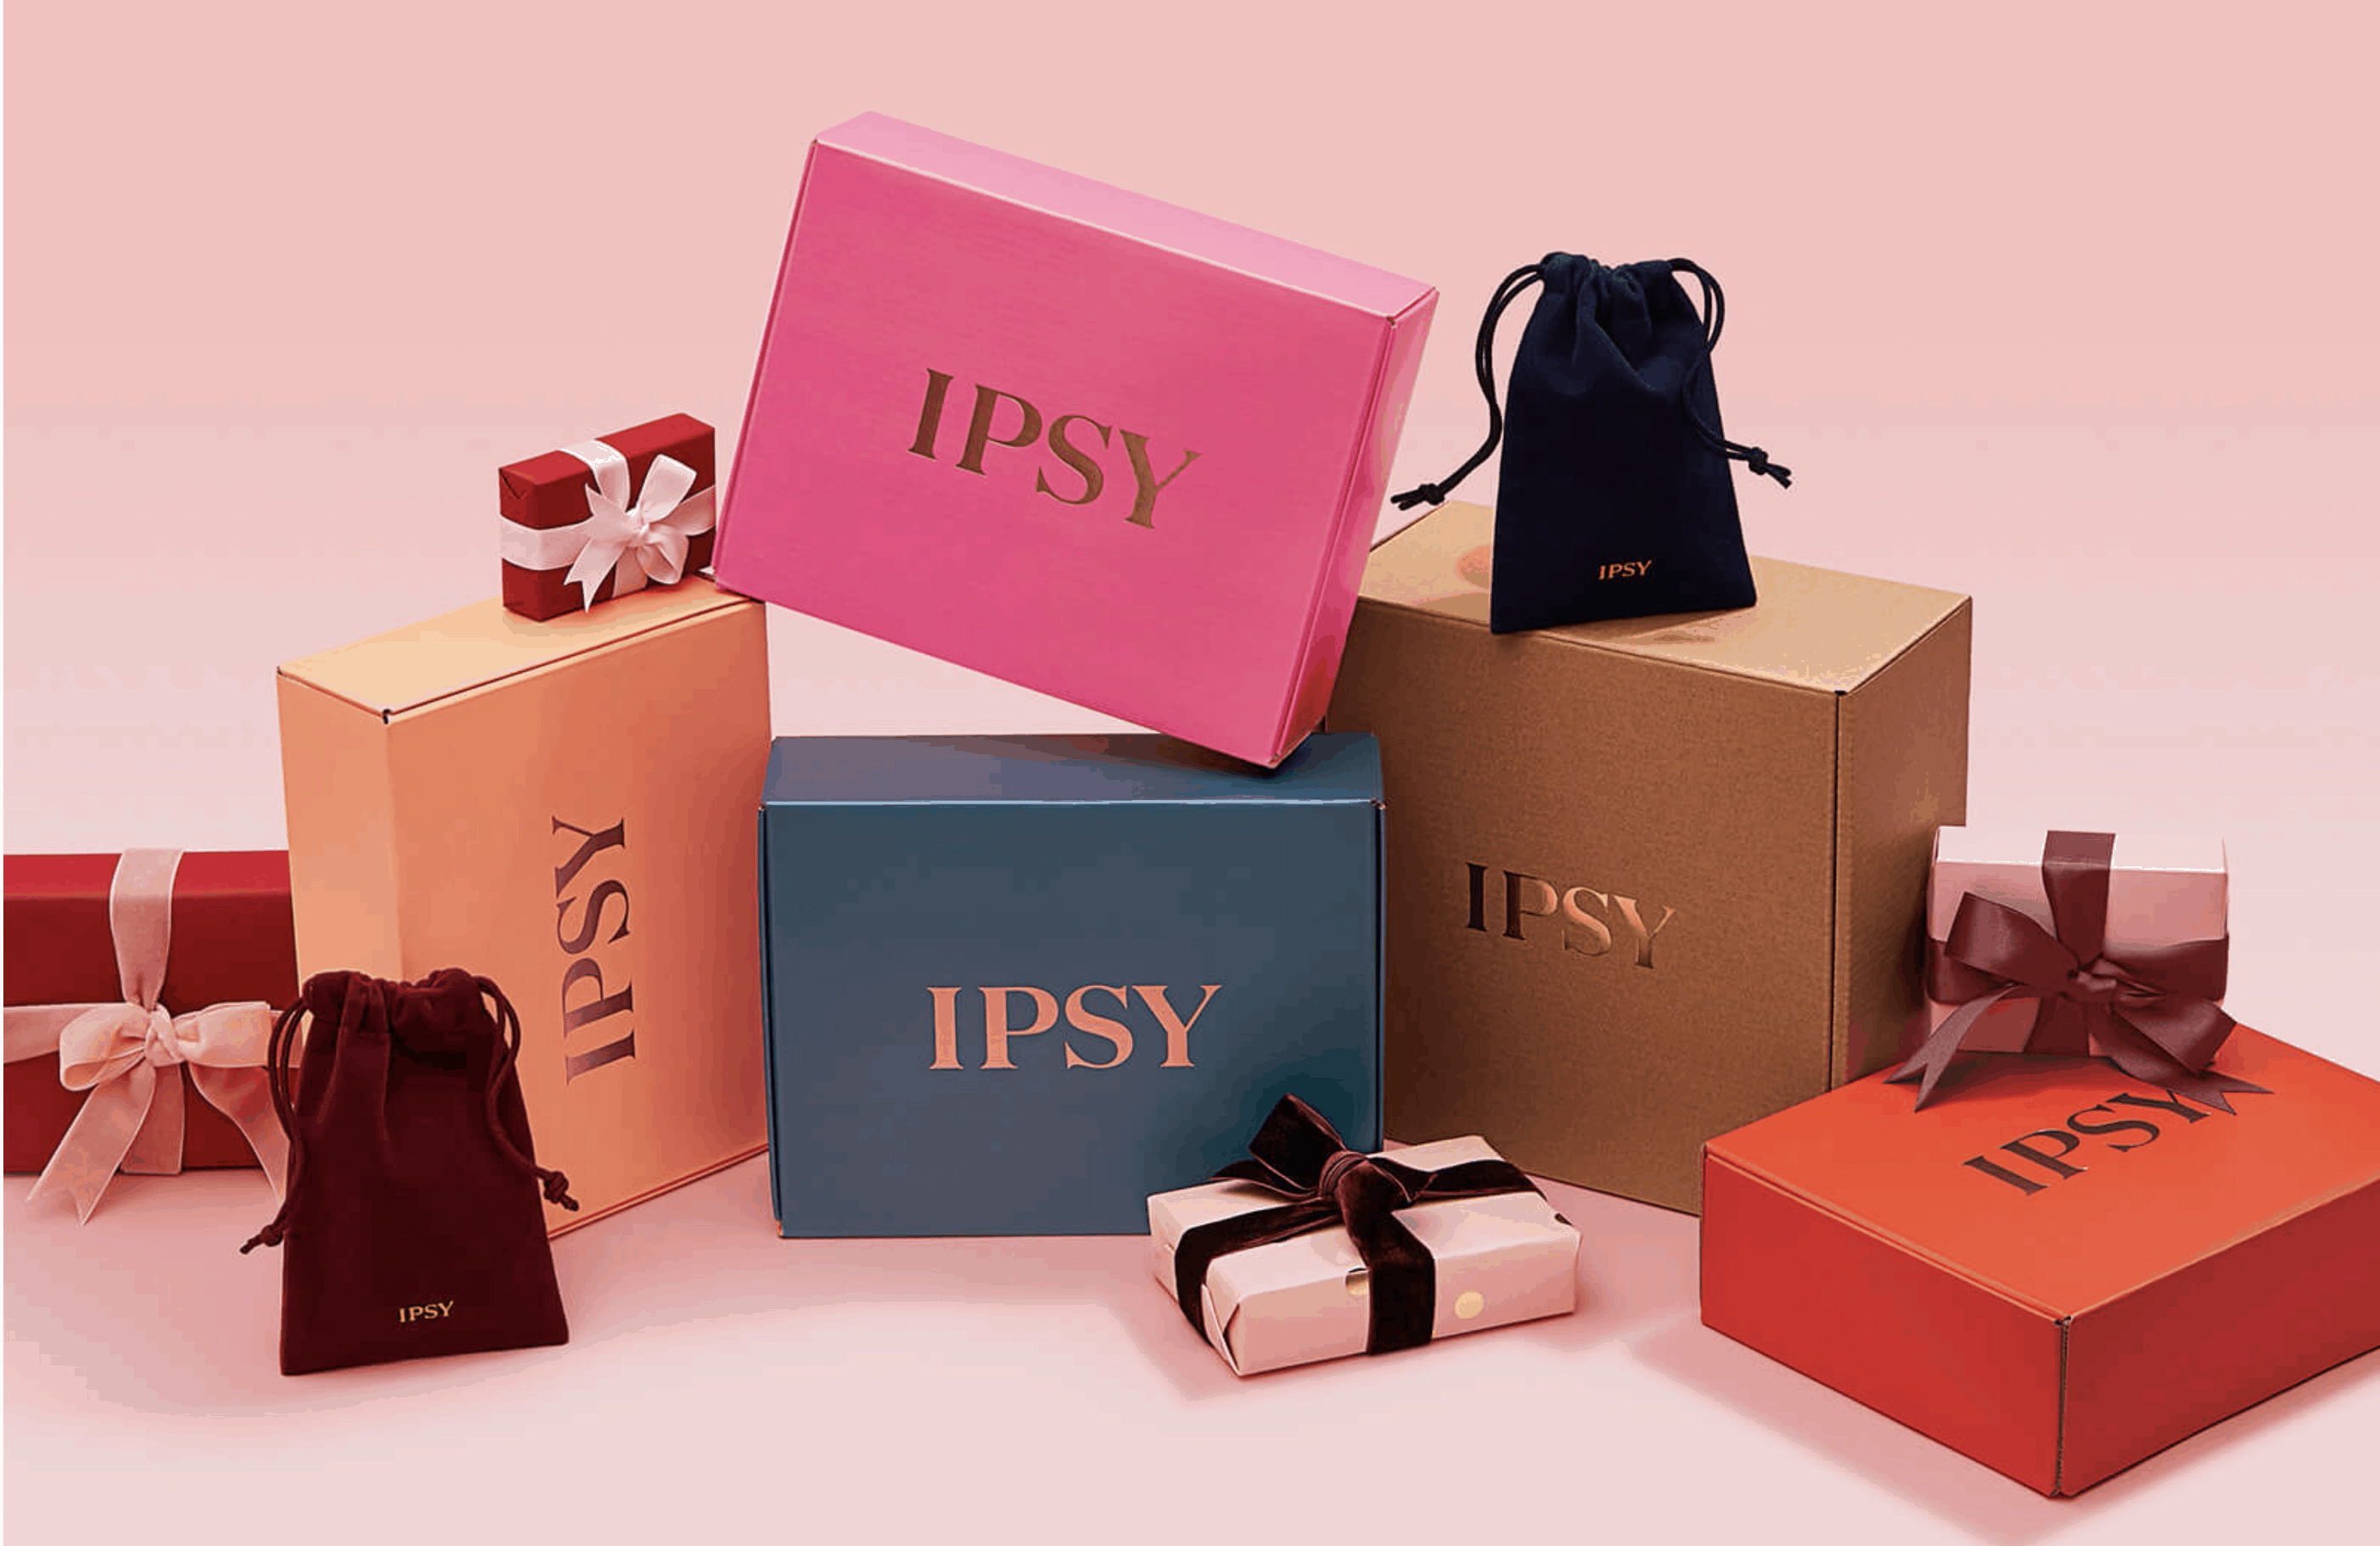 Ipsy Black Friday & Cyber Monday 2019 Sale Coming Soon – Up To 70% Off!